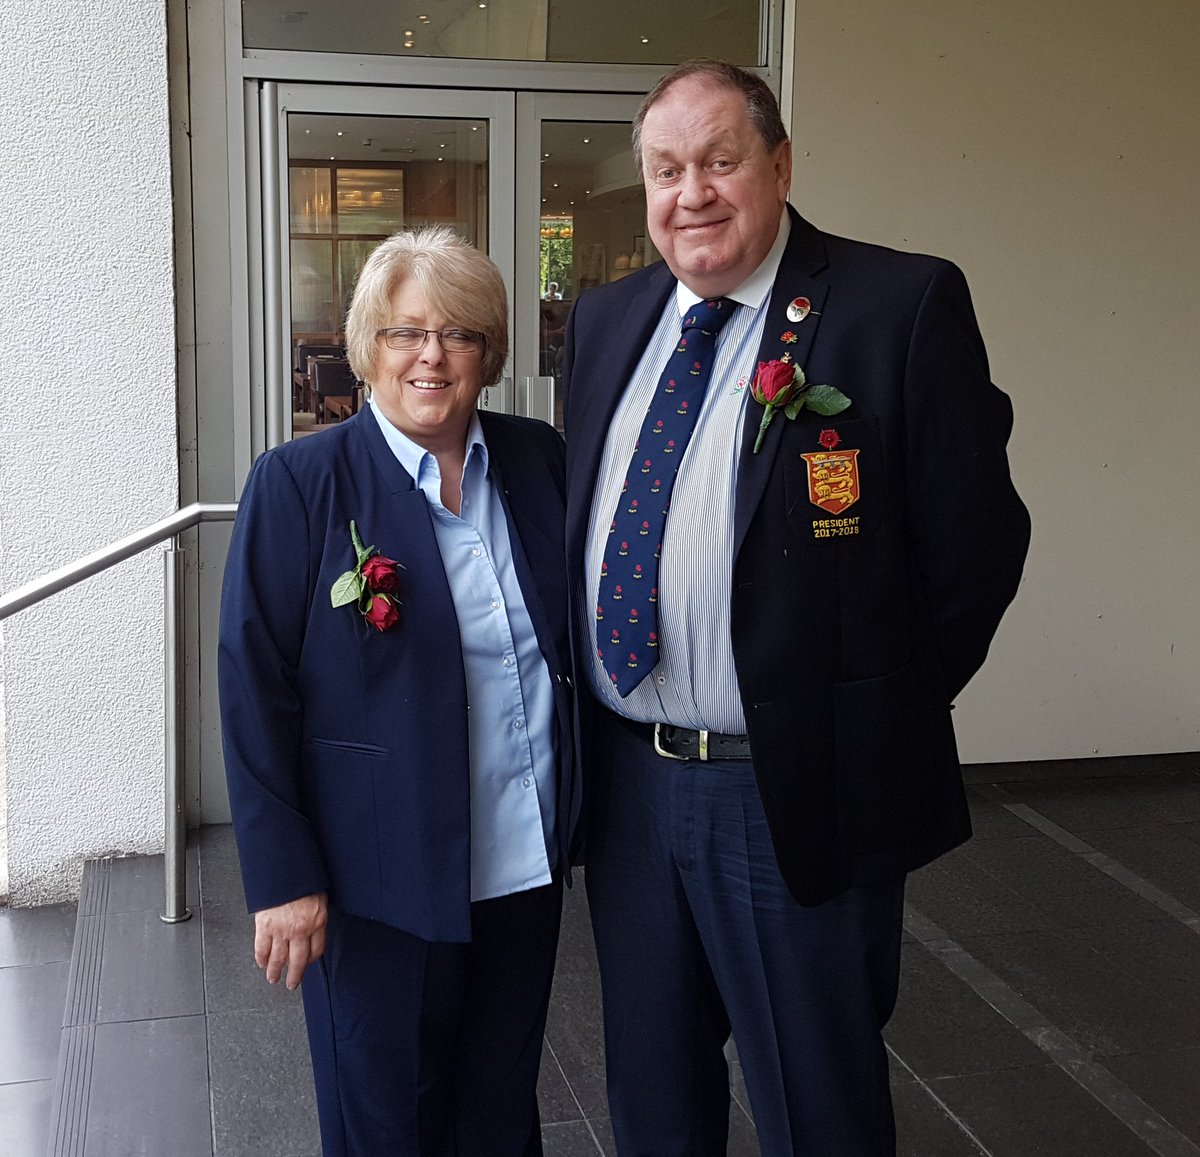 Mr. President and his good lady on route to the @lancashirerugby Team Hotel for the match shirt presentation. #ohlankylanky #bbcup #rochdaleroyalty<br>http://pic.twitter.com/Jsdtx1Yf7e